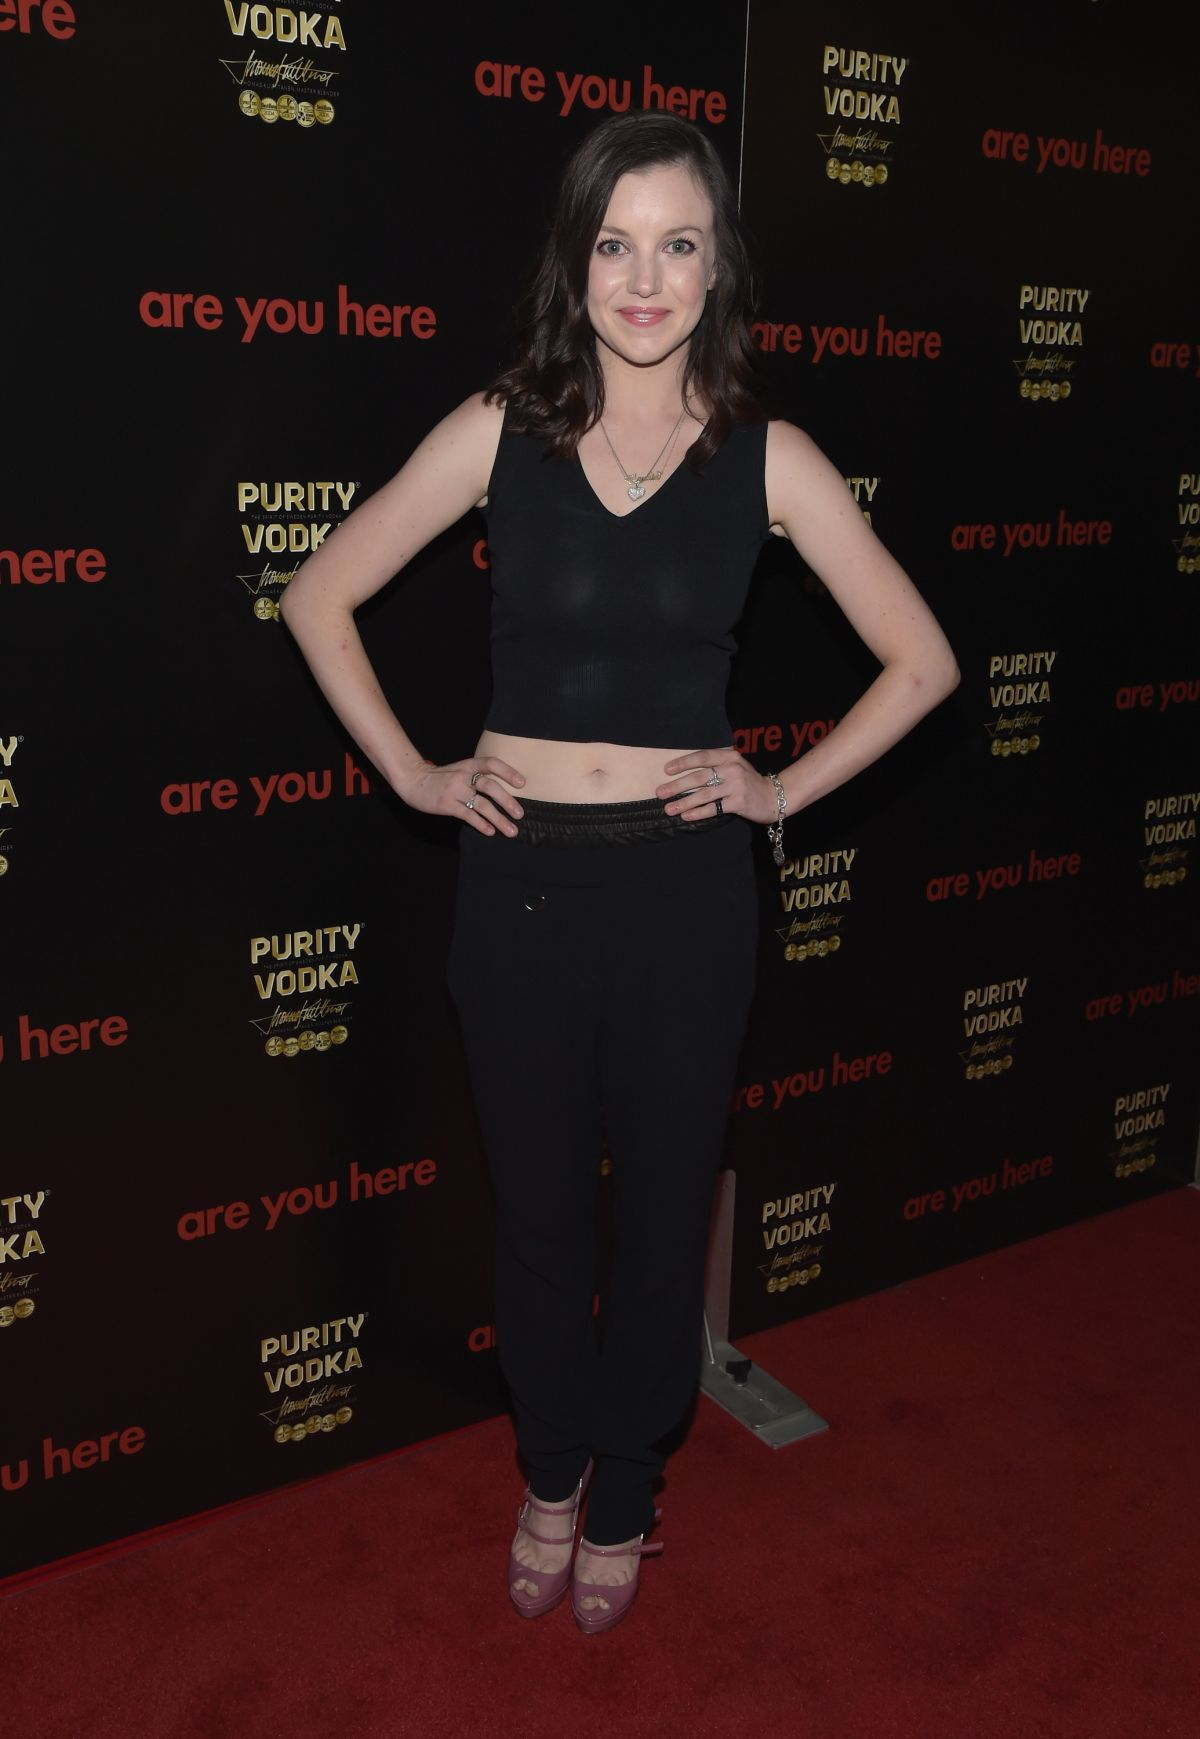 CLAUDIA LEVY at Are You Here Premiere in Los Angeles